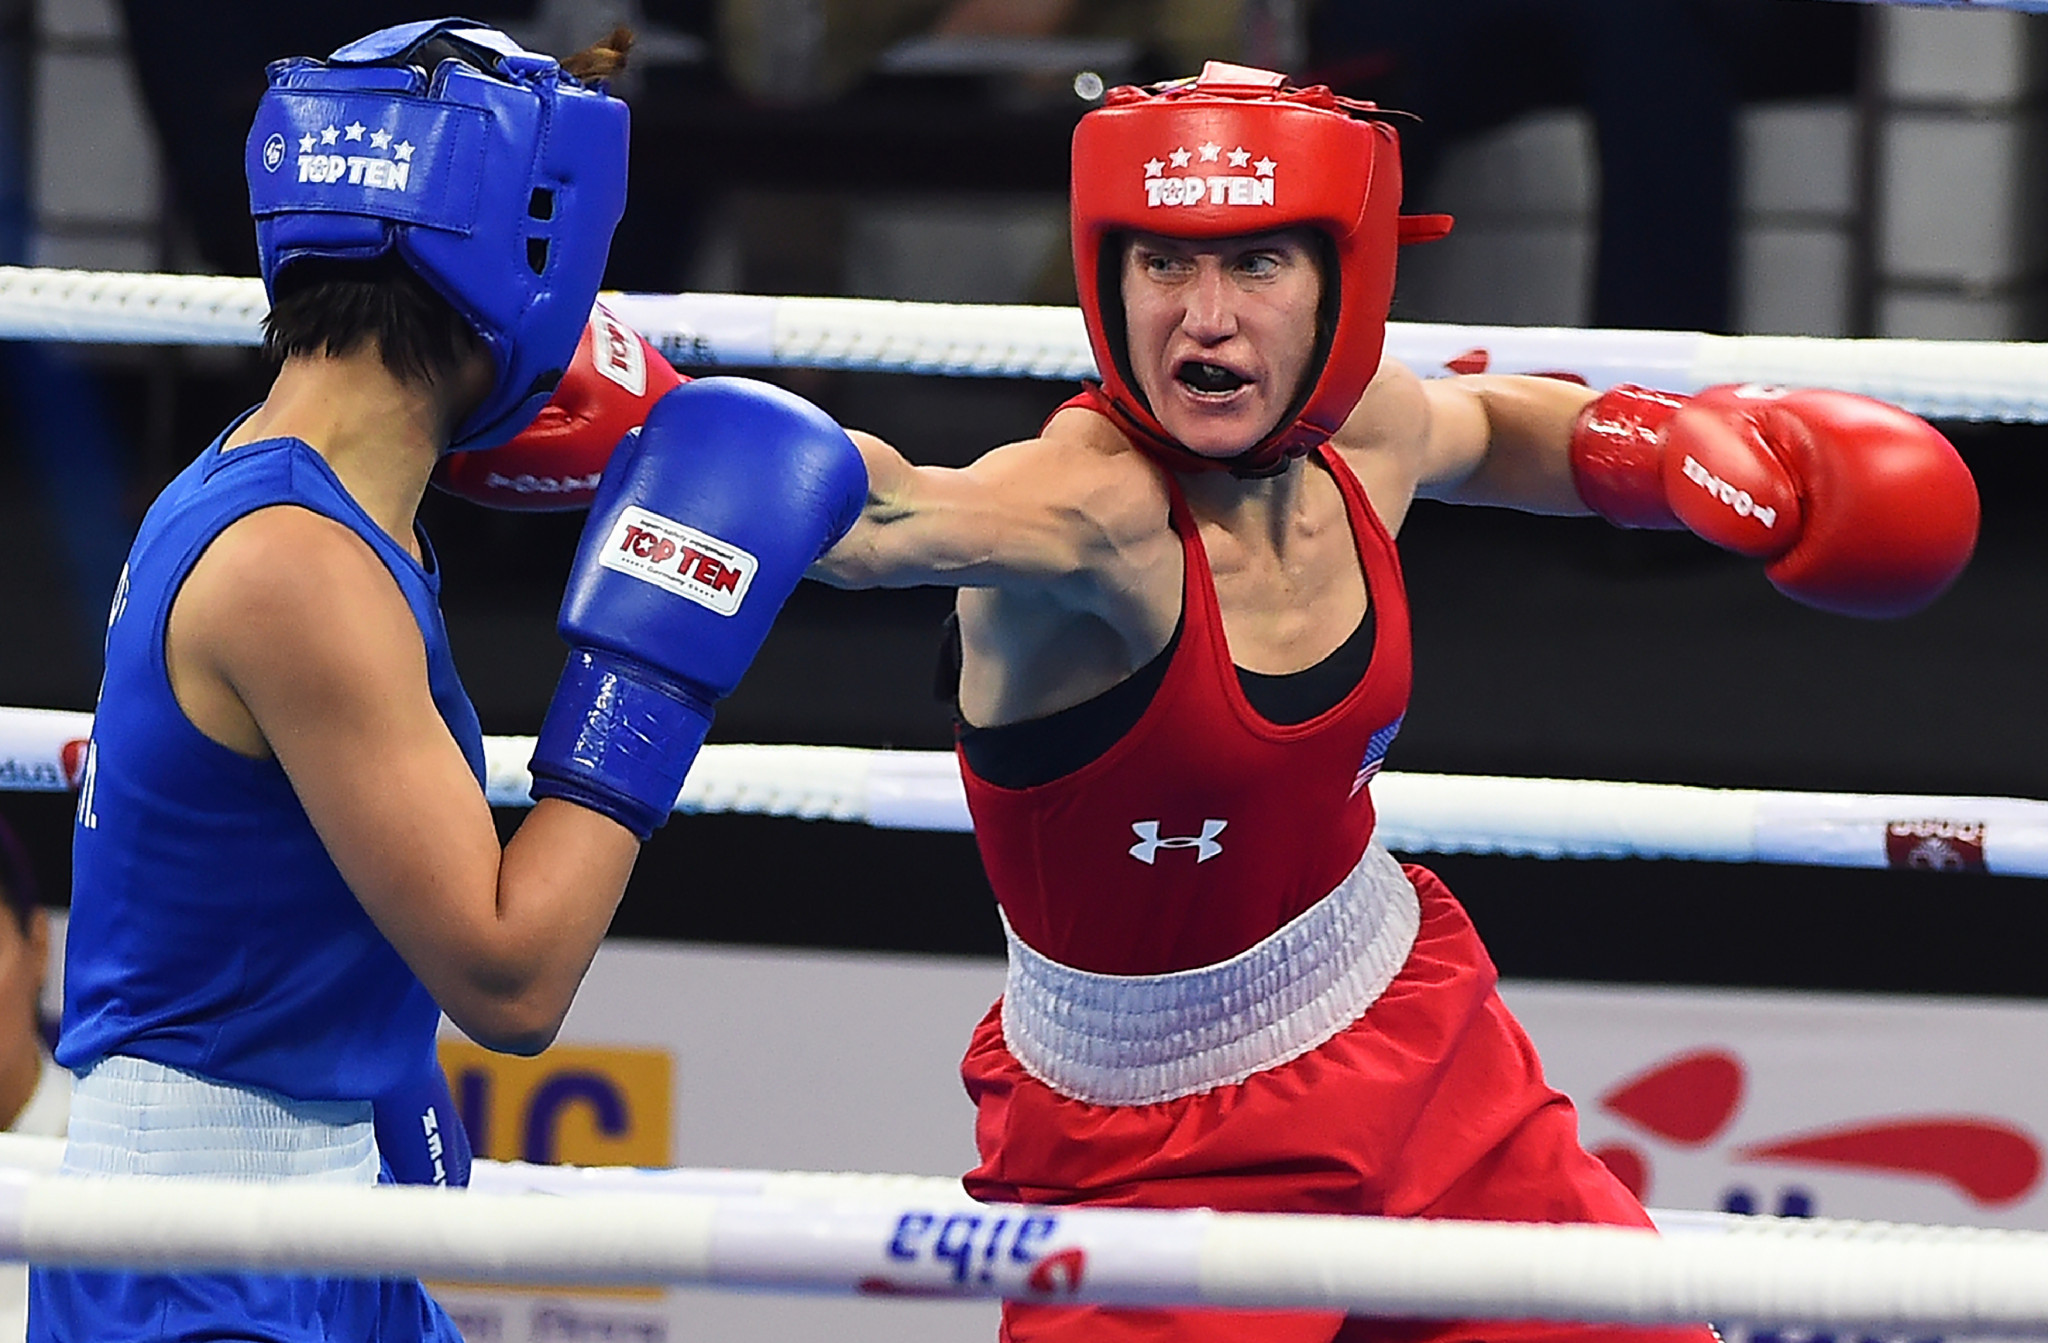 Virginia Fuchs, winner of the bronze medal at the 2018 New Delhi World Boxing Championships, will attend the multi-nation training camp at the U.S. Olympic Training Center in Colorado Springs ©Getty Images